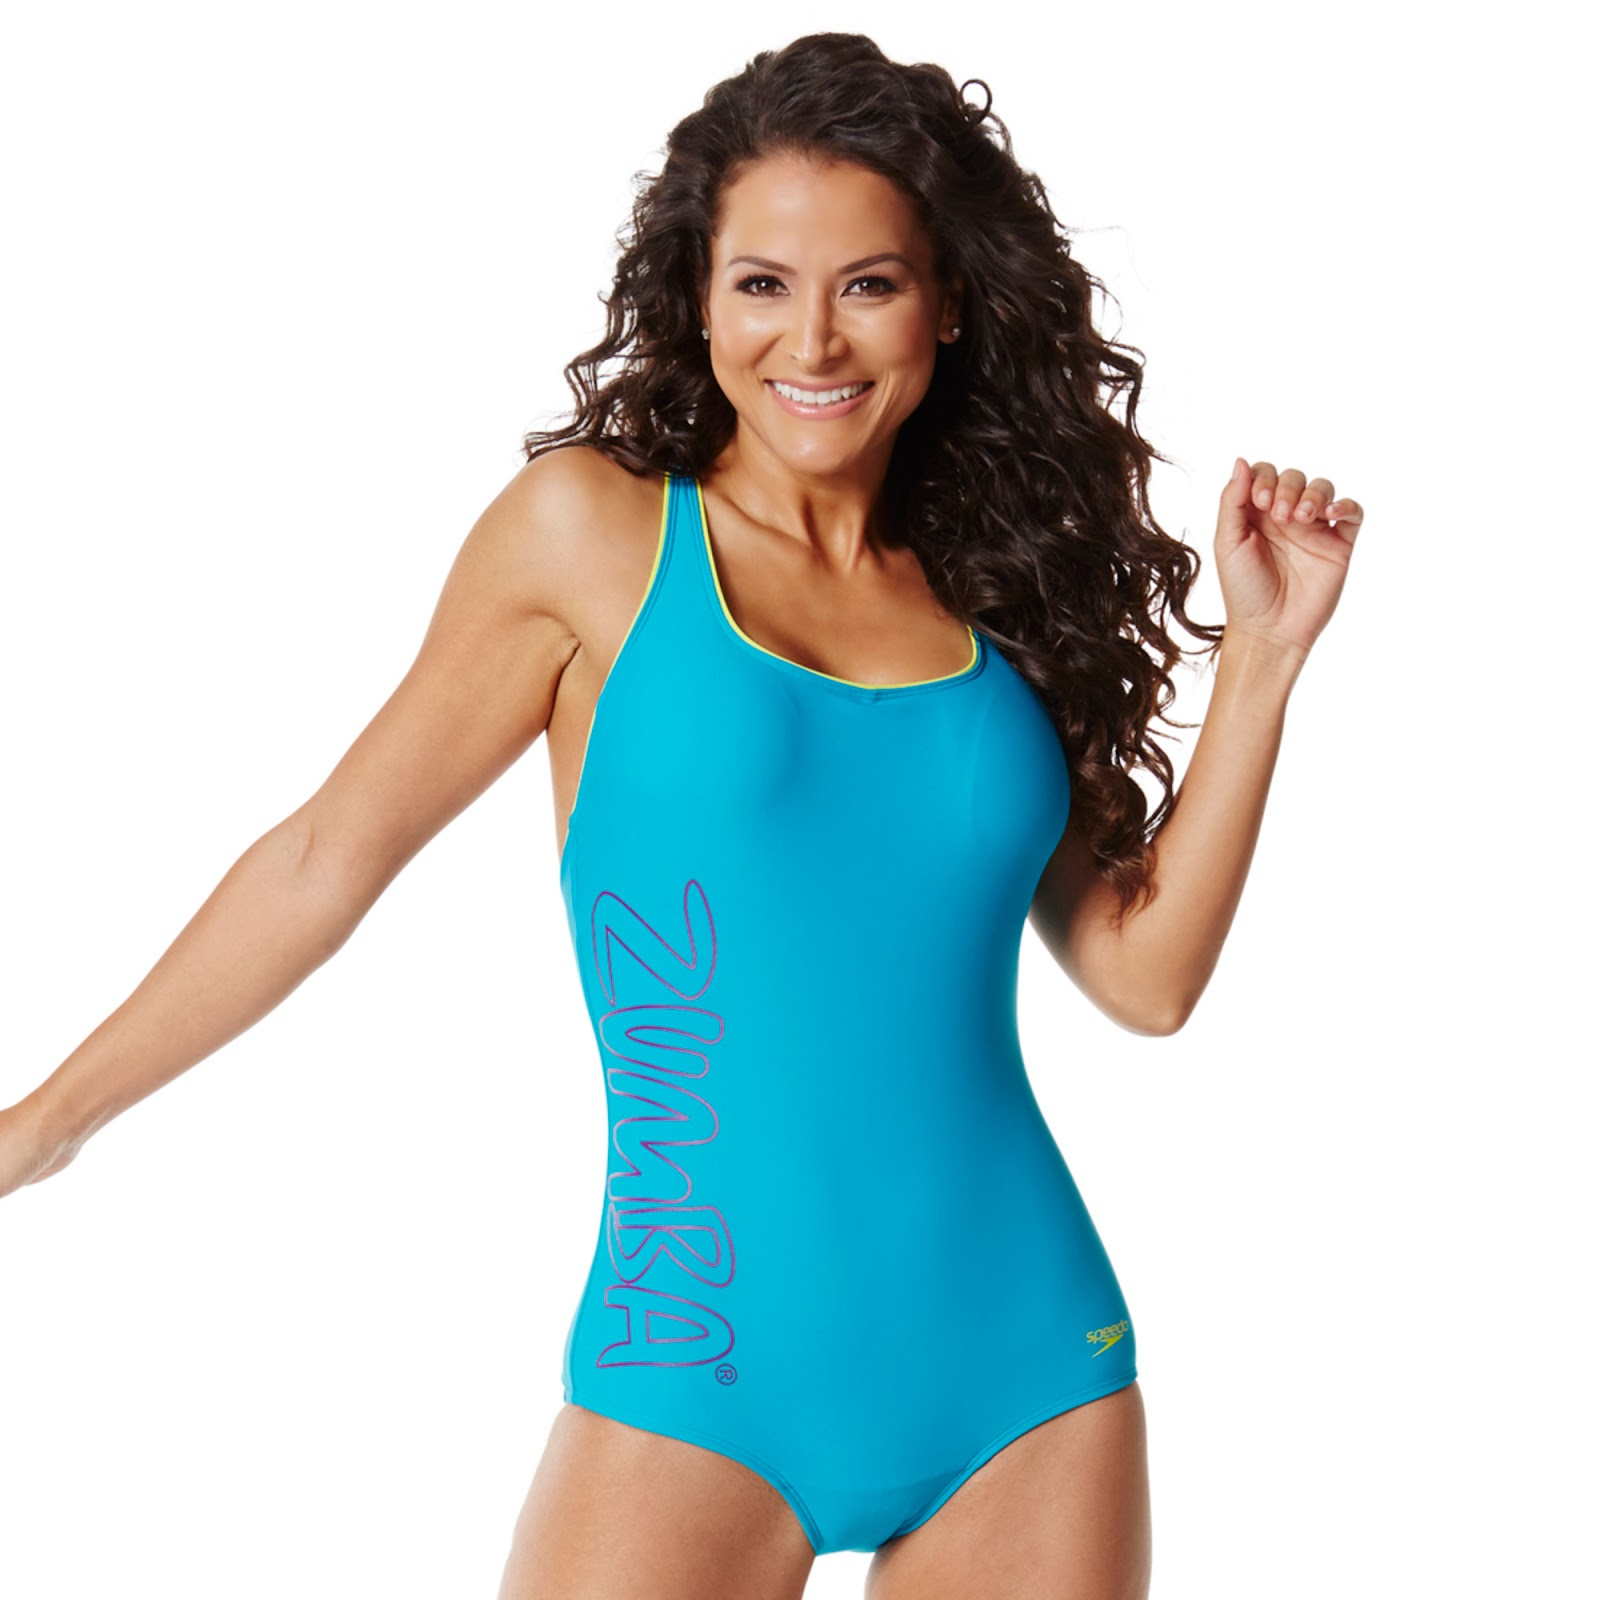 http://www.zumba.com/en-US/store-zin/US/product/rock-with-me-ultraback-one-piece?color=Tropical%20Teal